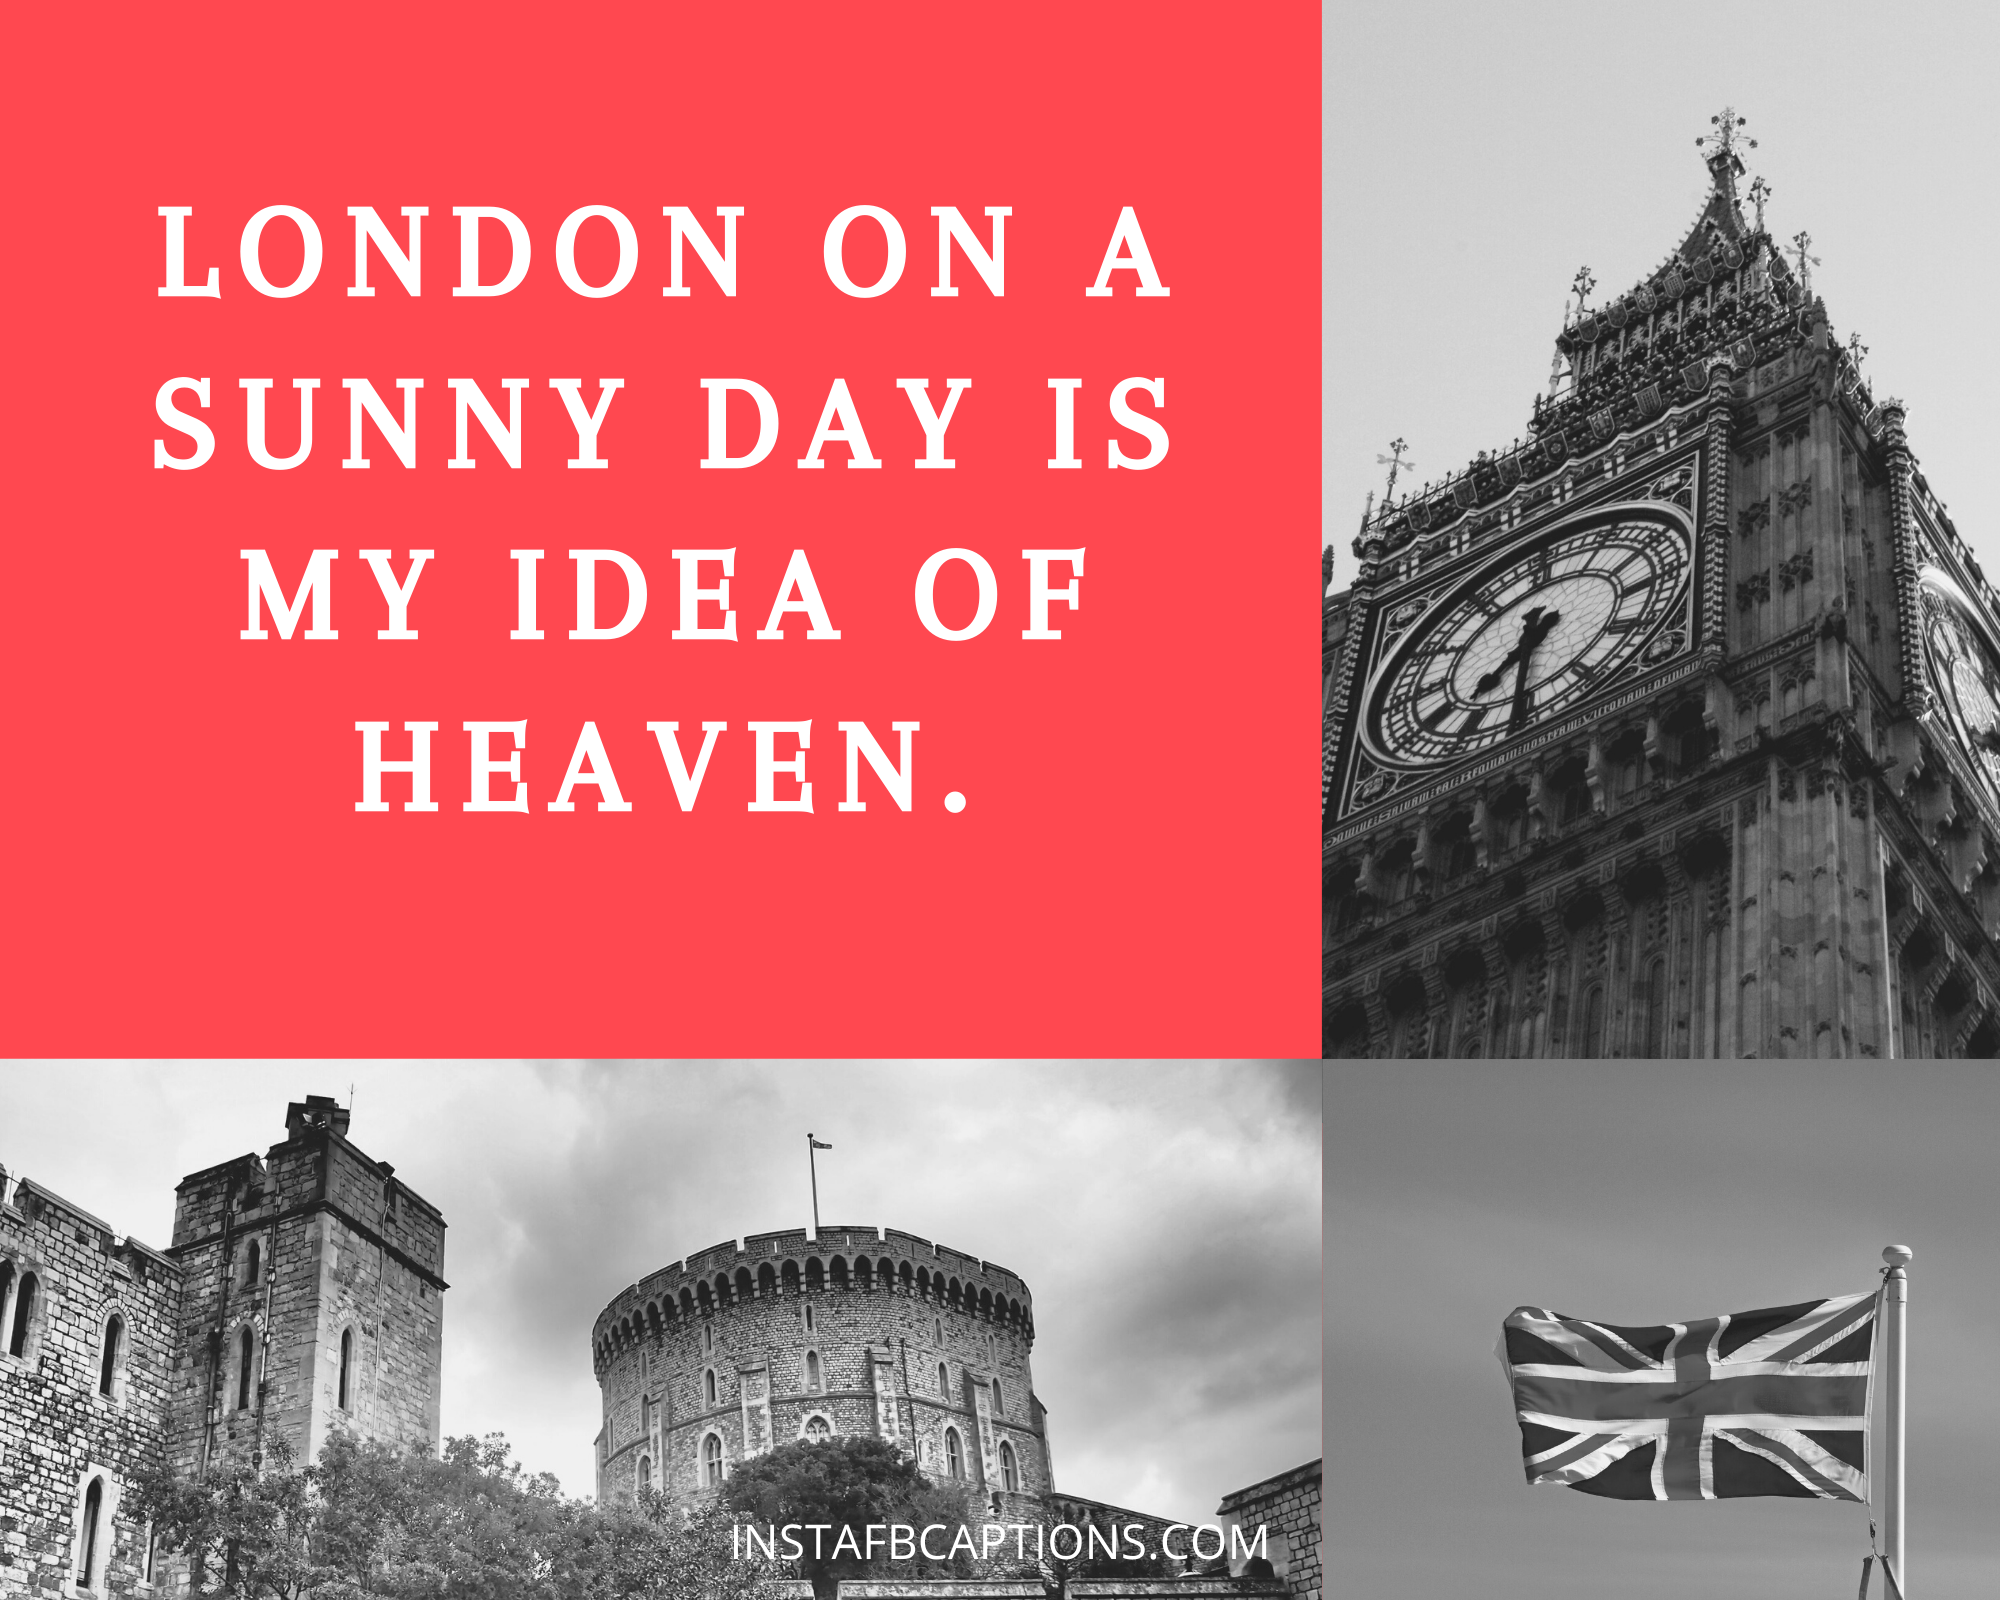 General Sayings To Use As Captions For Pictures In Londo  - General Sayings to Use as Captions for Pictures in London - 99+ LONDON Instagram Captions for London Diaries, Bus, & Dreams in 2021